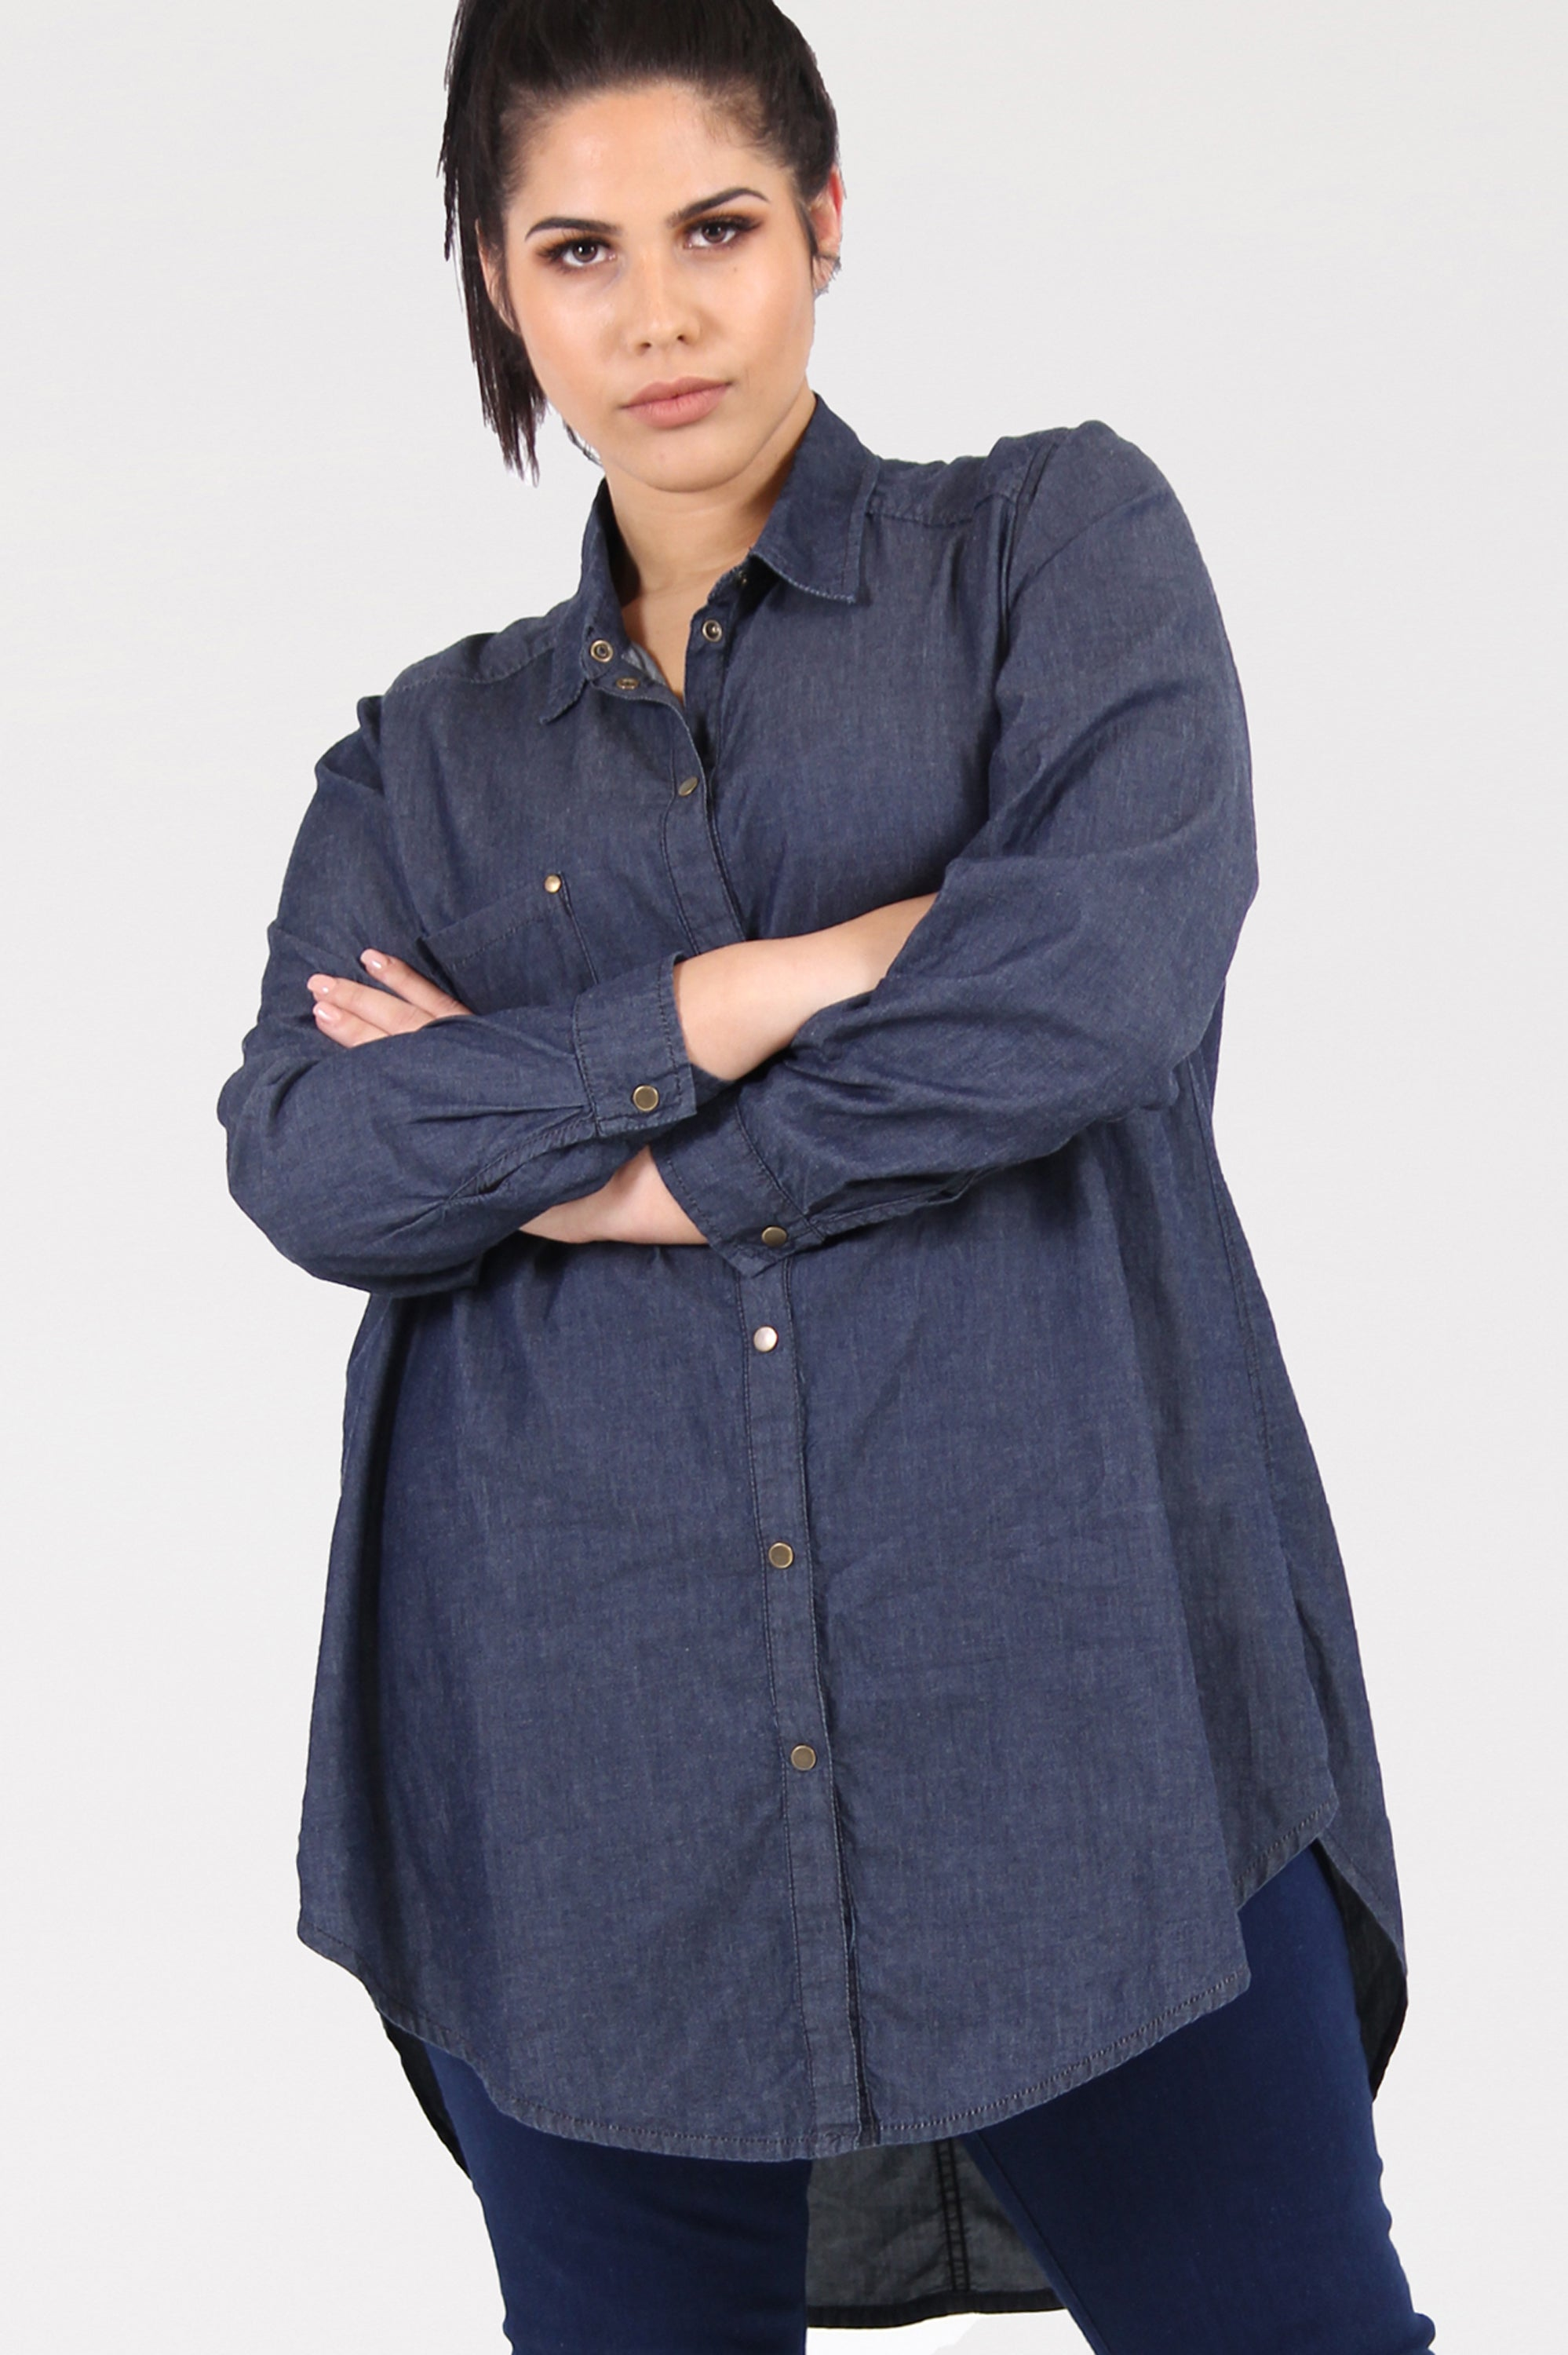 Jean Genie Denim Shirt - Indigo